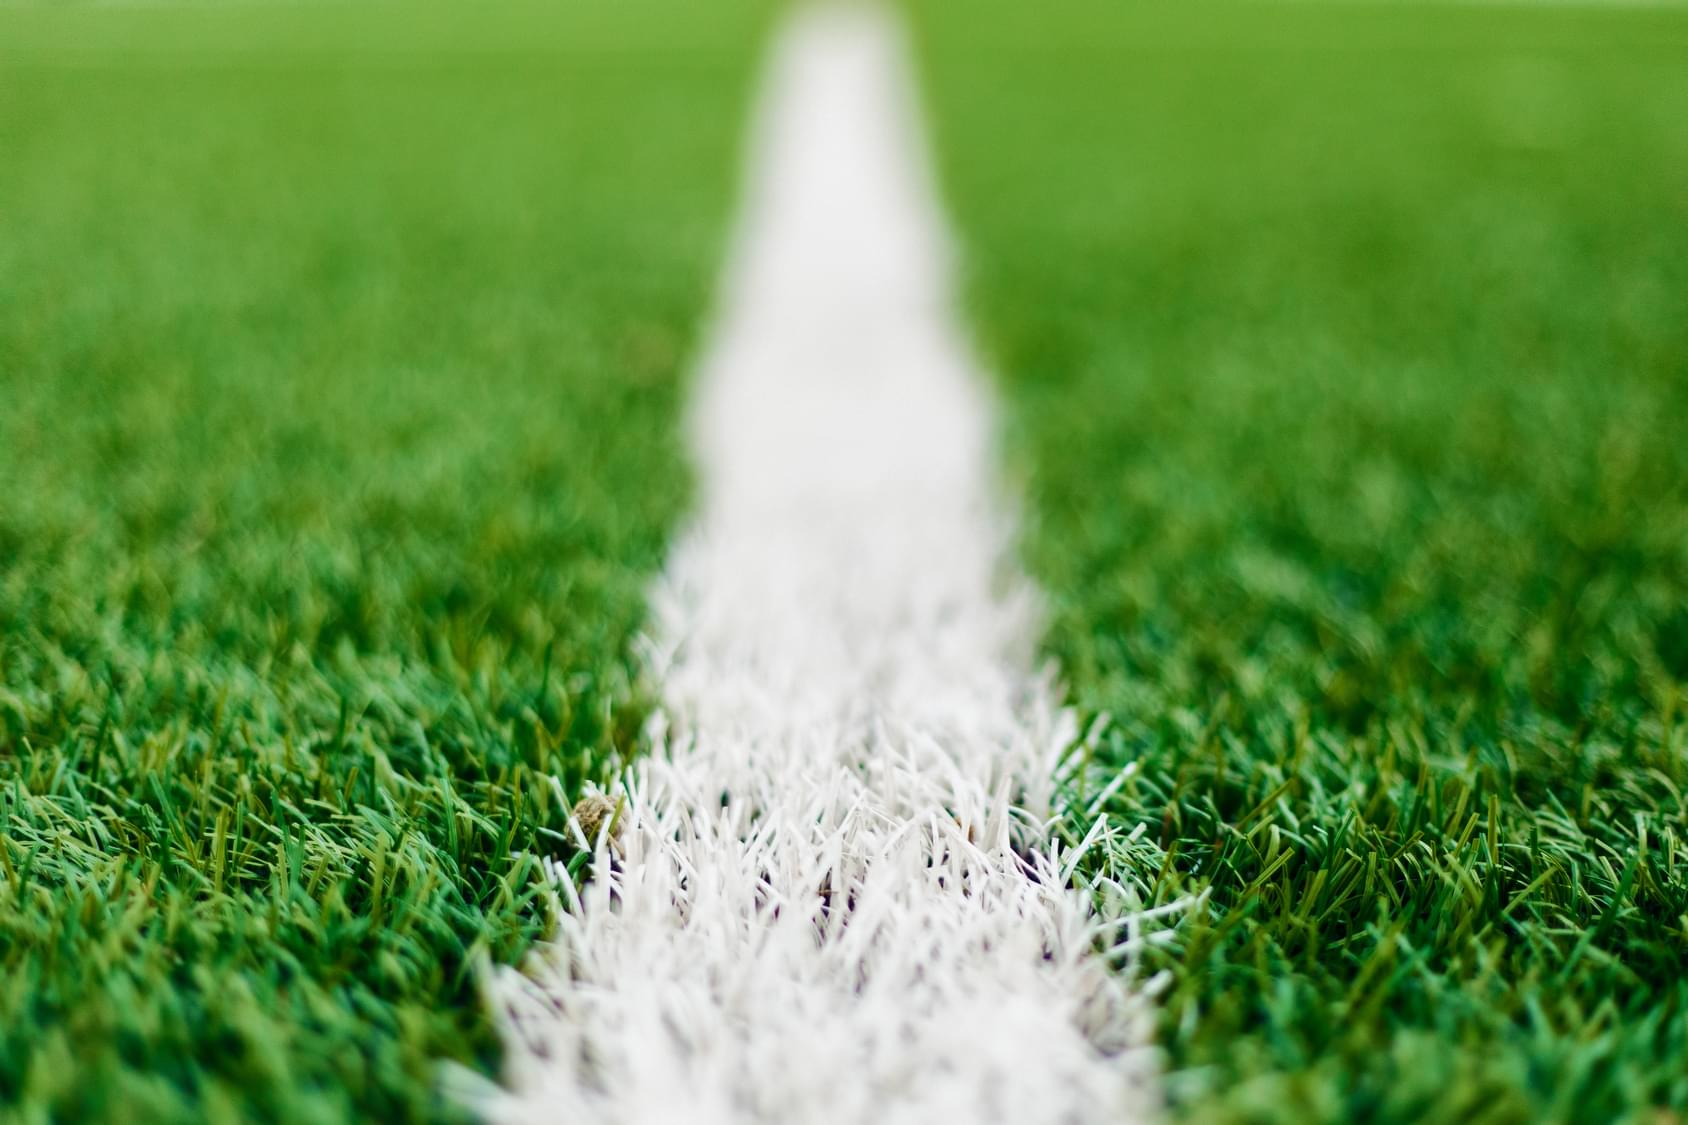 White line on a green soccer field illustrating the Football Euro Cup